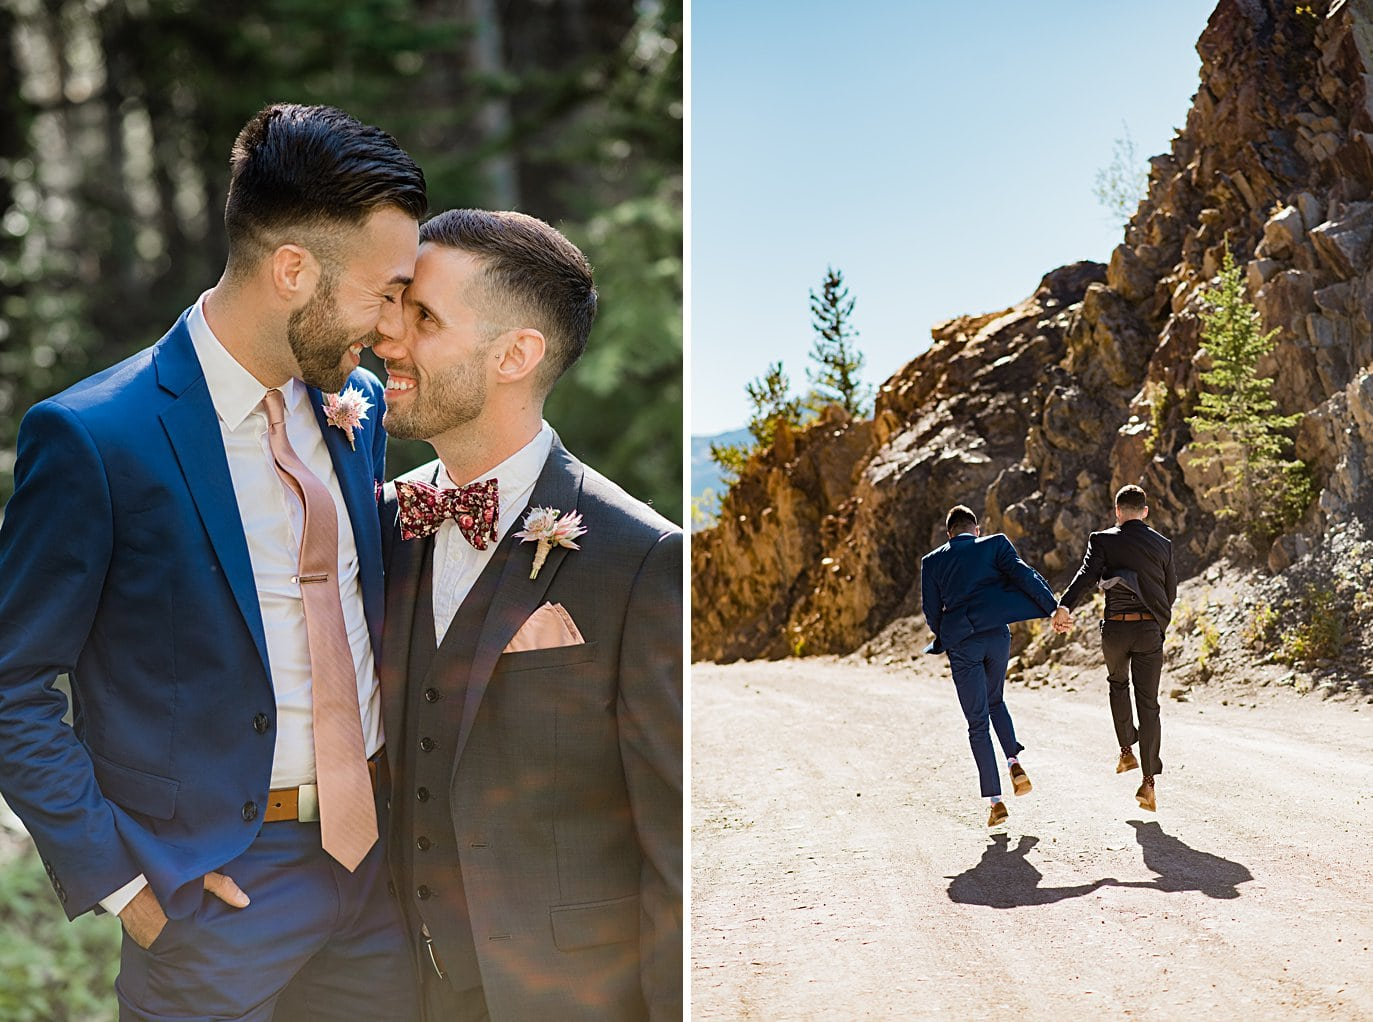 two grooms walking down road at Boras Pass elopement by Breckenridge elopement photographer Jennie Crate